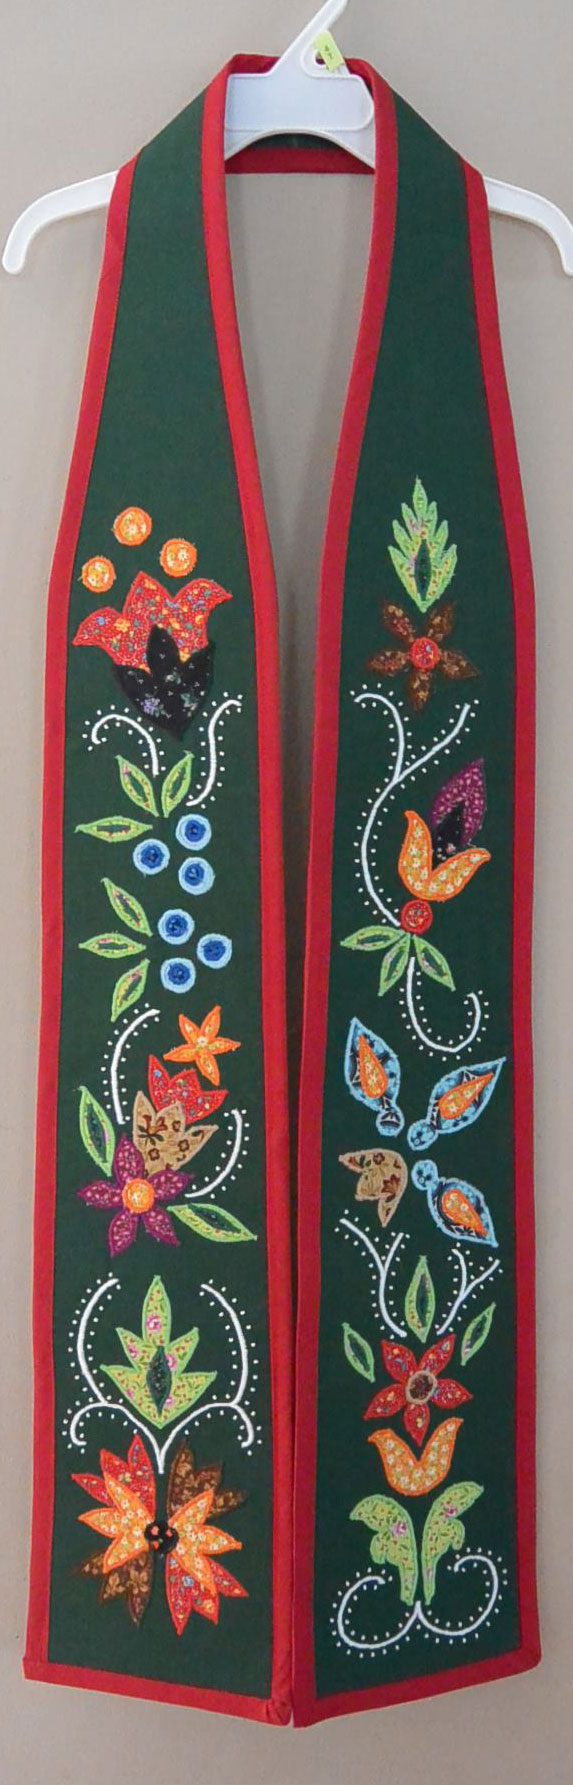 Traditional Anishinaabe / Ojibwe Woodland Floral Graduation Honor Sashes – 2014